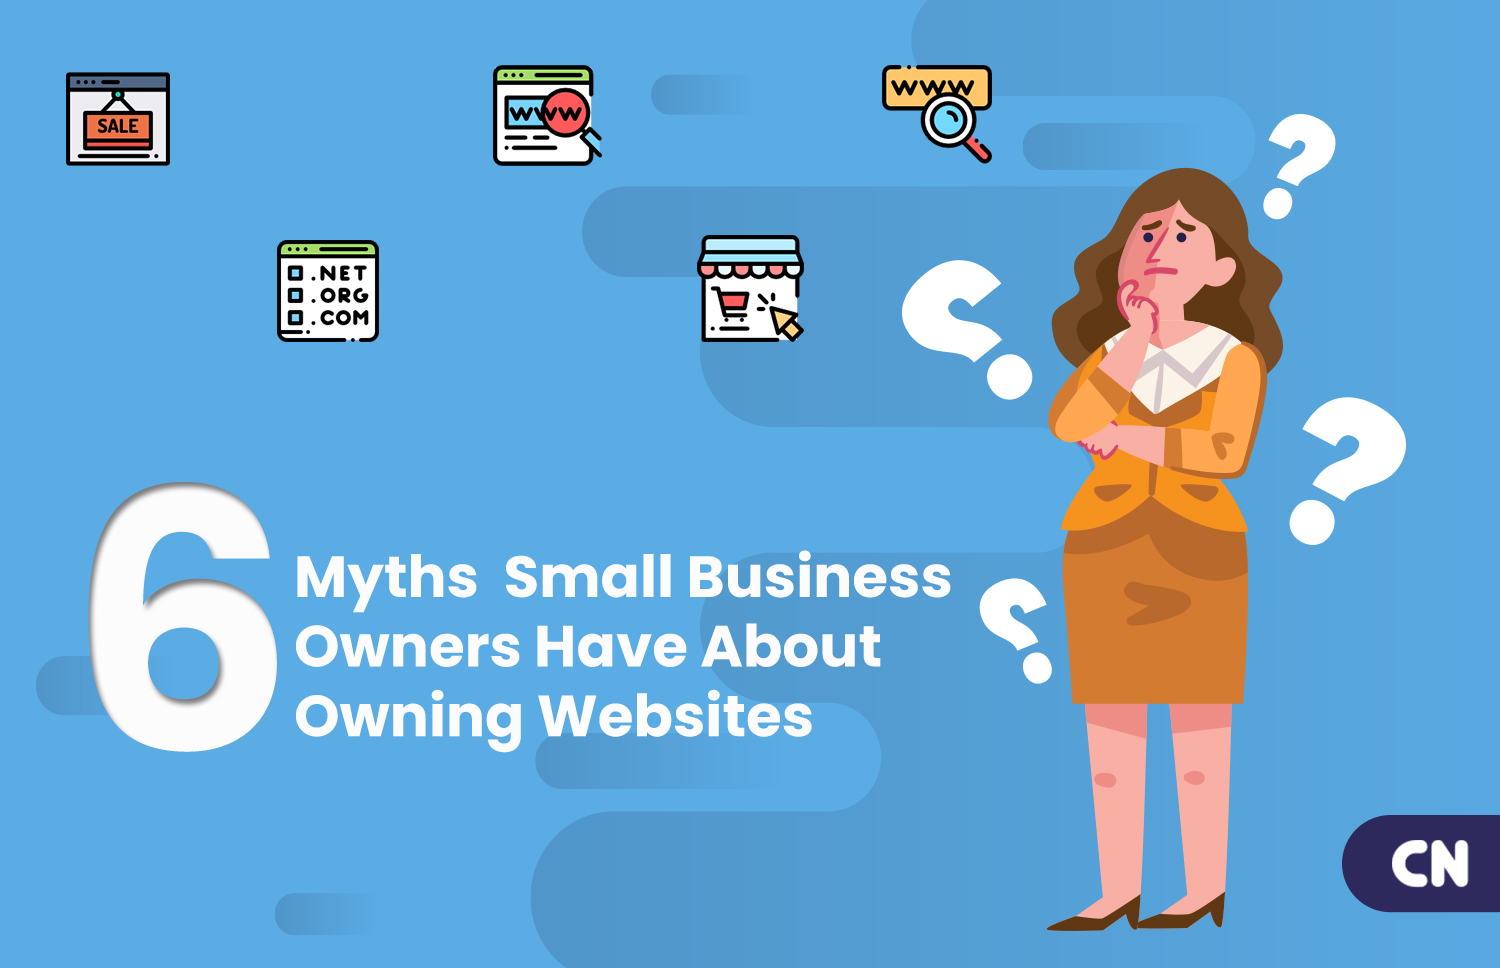 6 Myths Small Business Owners